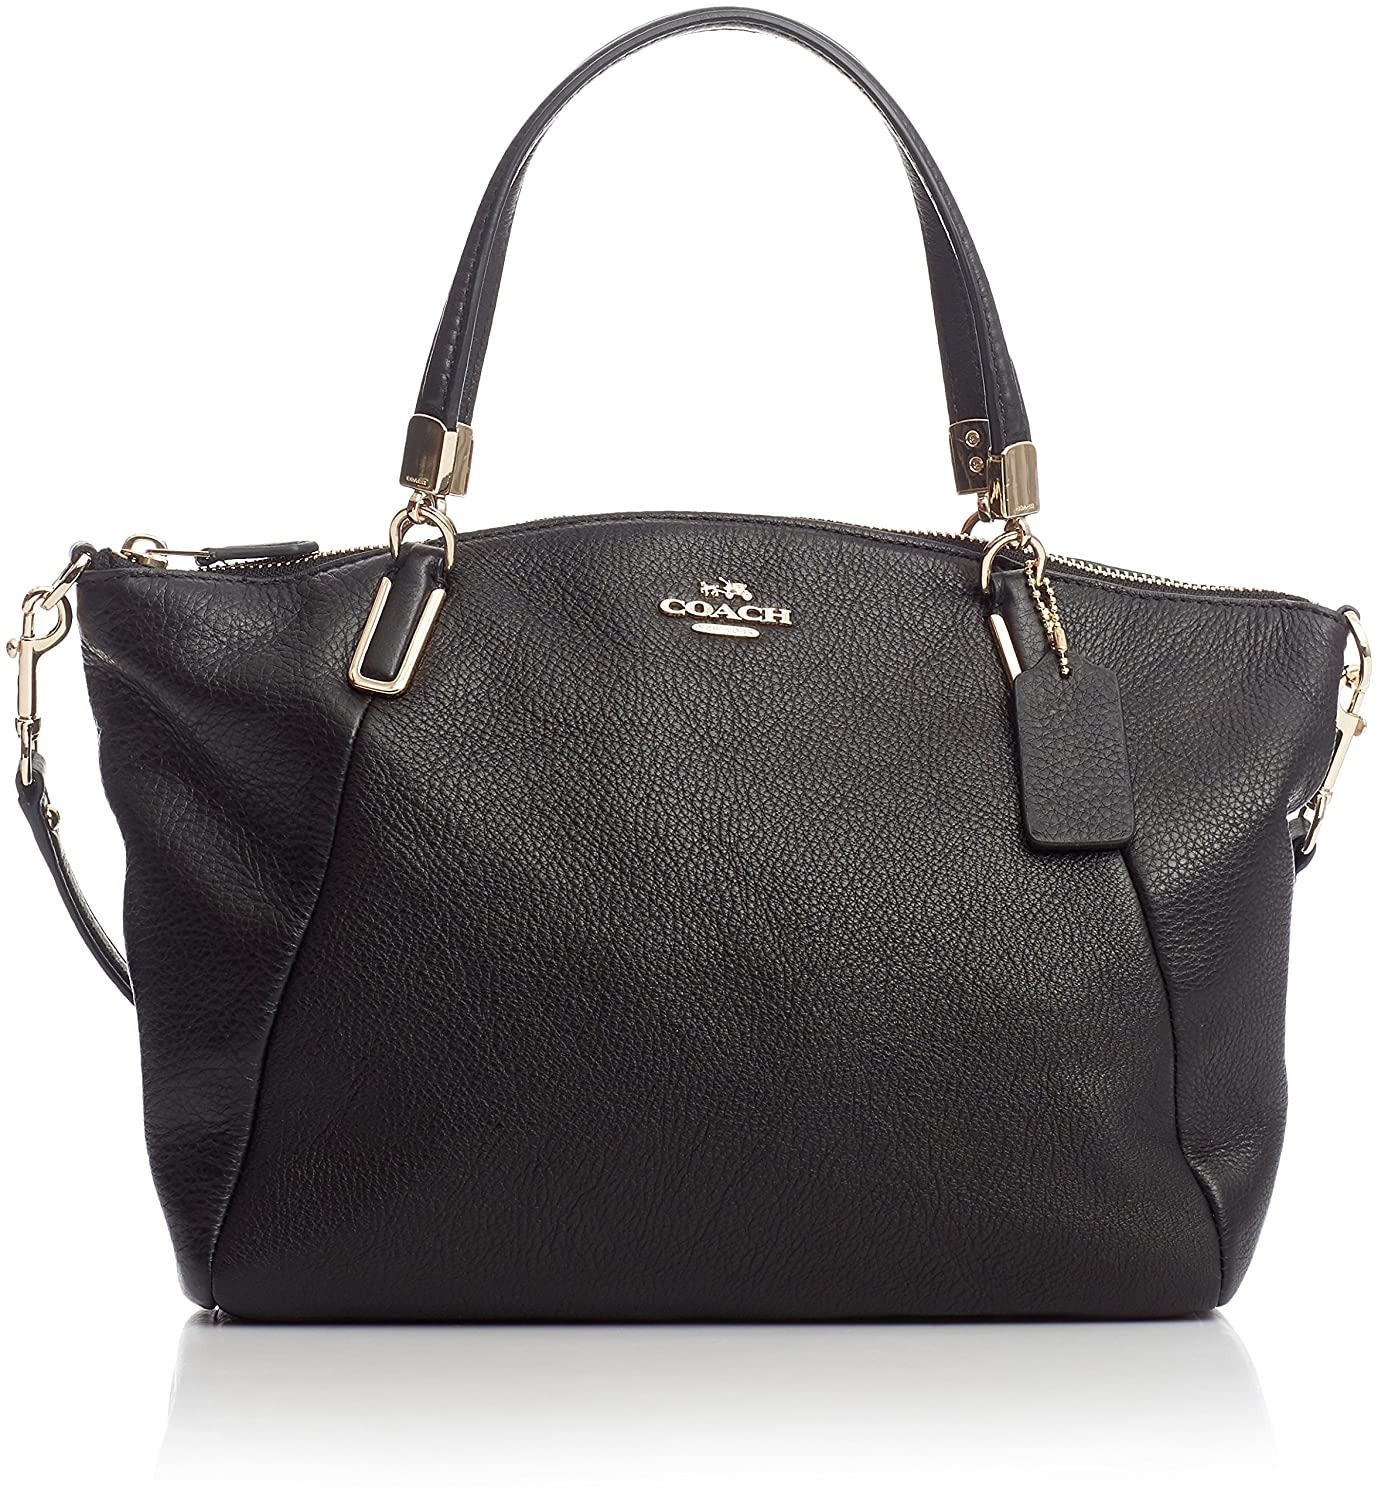 5ddc0134f6 Coach Black Pebbled Leather Small Kelsey  Handbags  Amazon.com